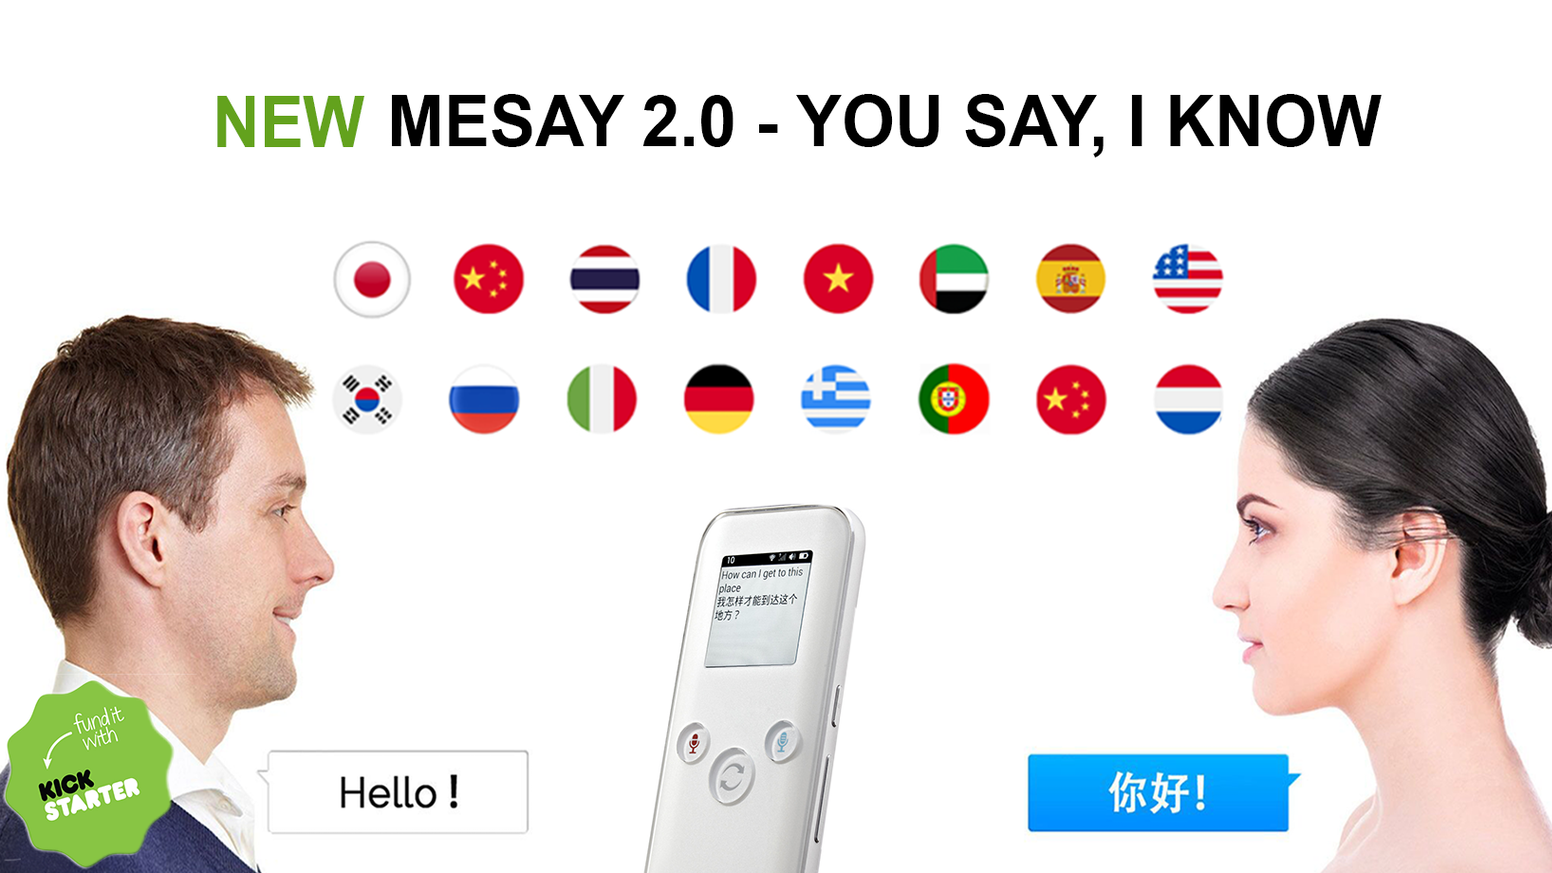 The new Mesay 2.0 is more than just a usual translator, with cool features you don't want to miss.